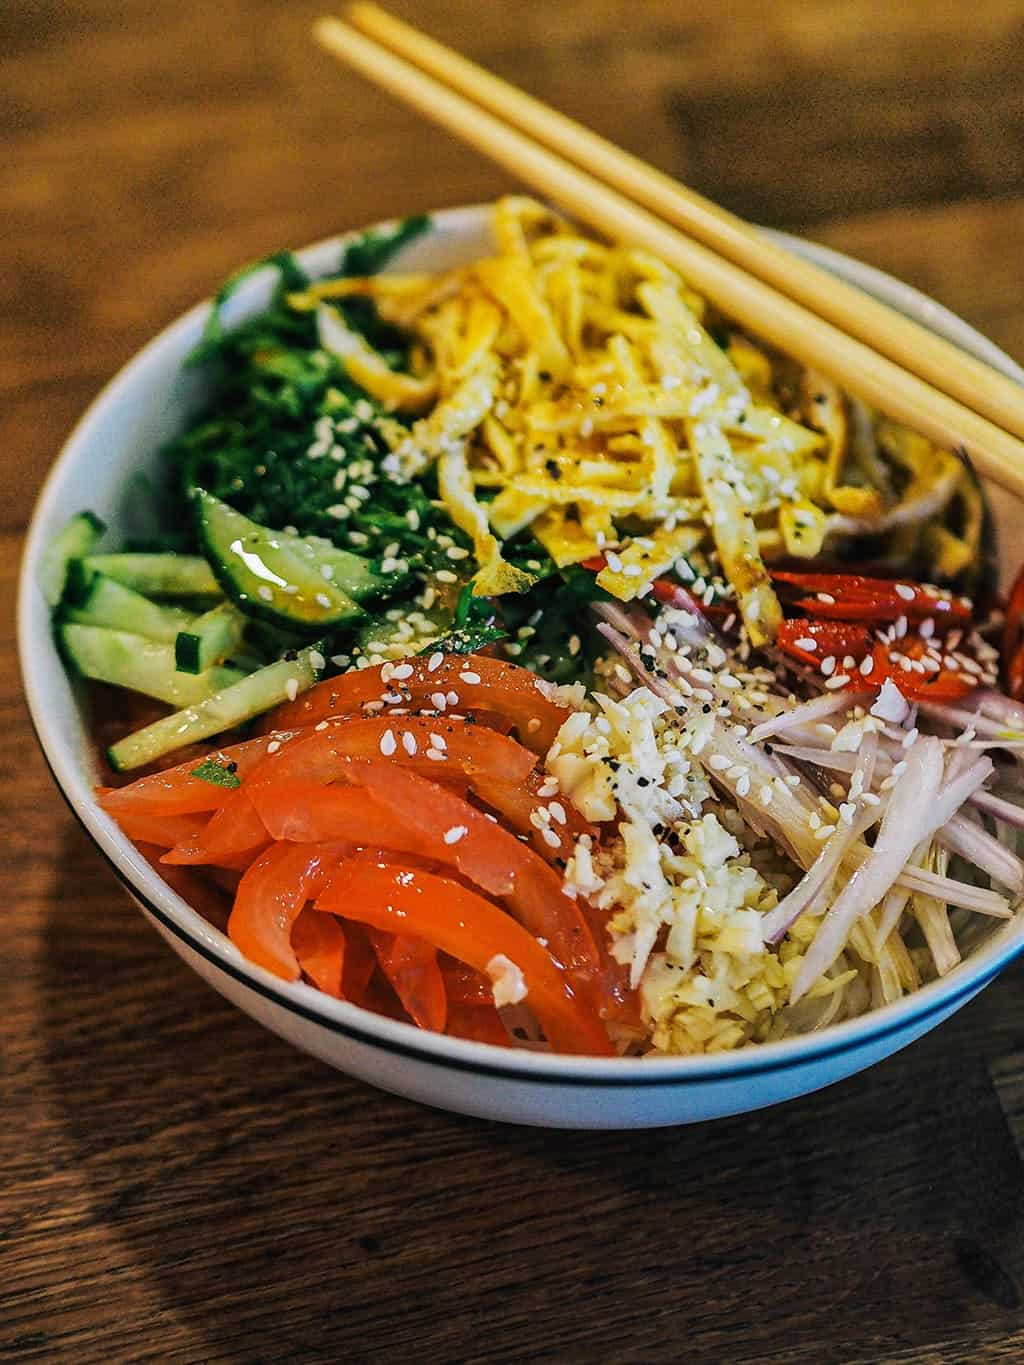 In this summer rice noodles salad recipe you'll find: eggs, garlic, shallots, tomato, cucumber, chili, spinach, and salad dressing